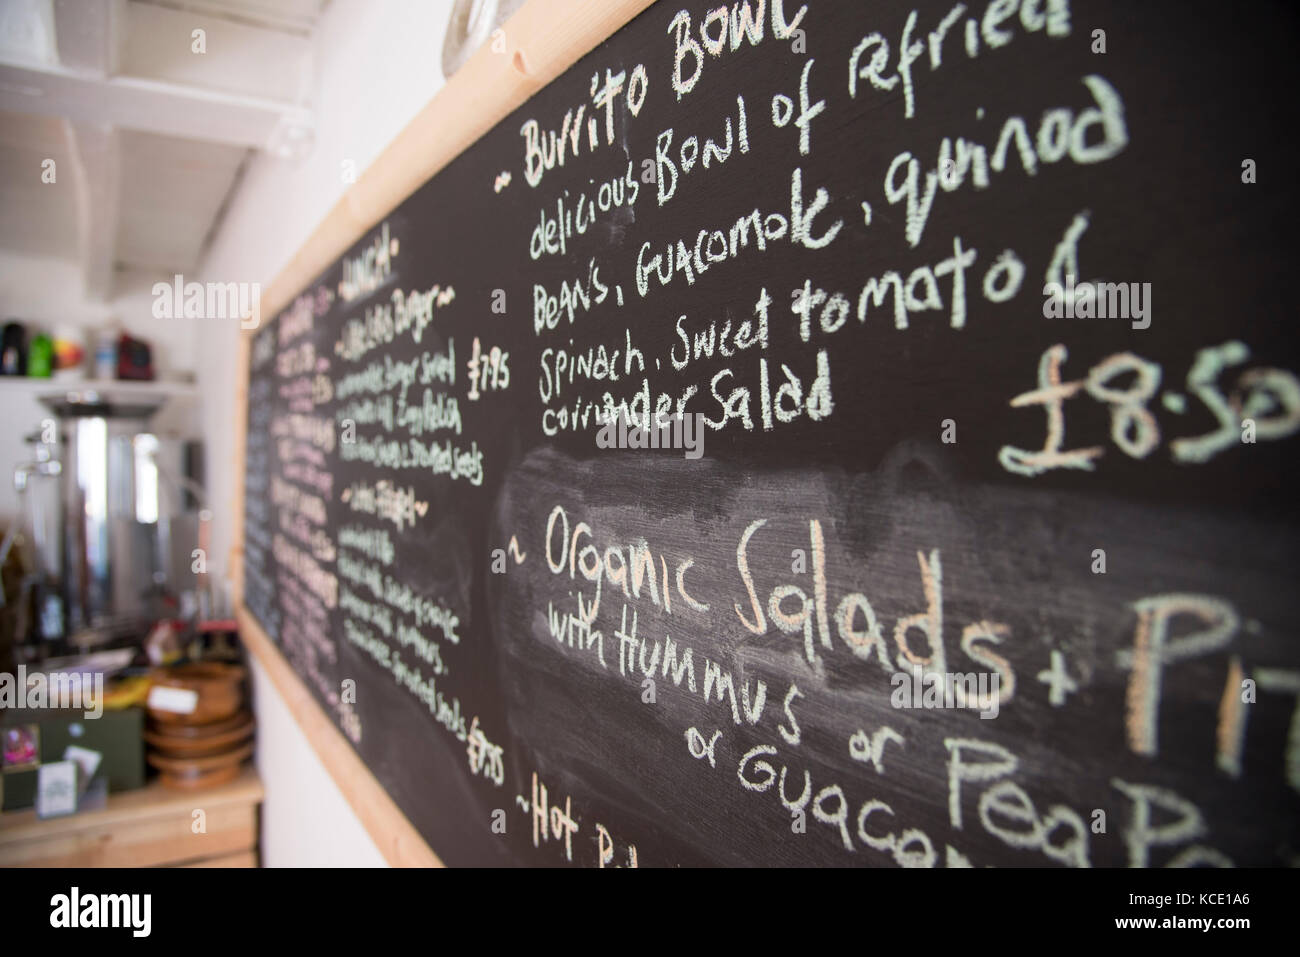 Little Lotus, Vegan Cafe, Truro, Cornwall. - Stock Image